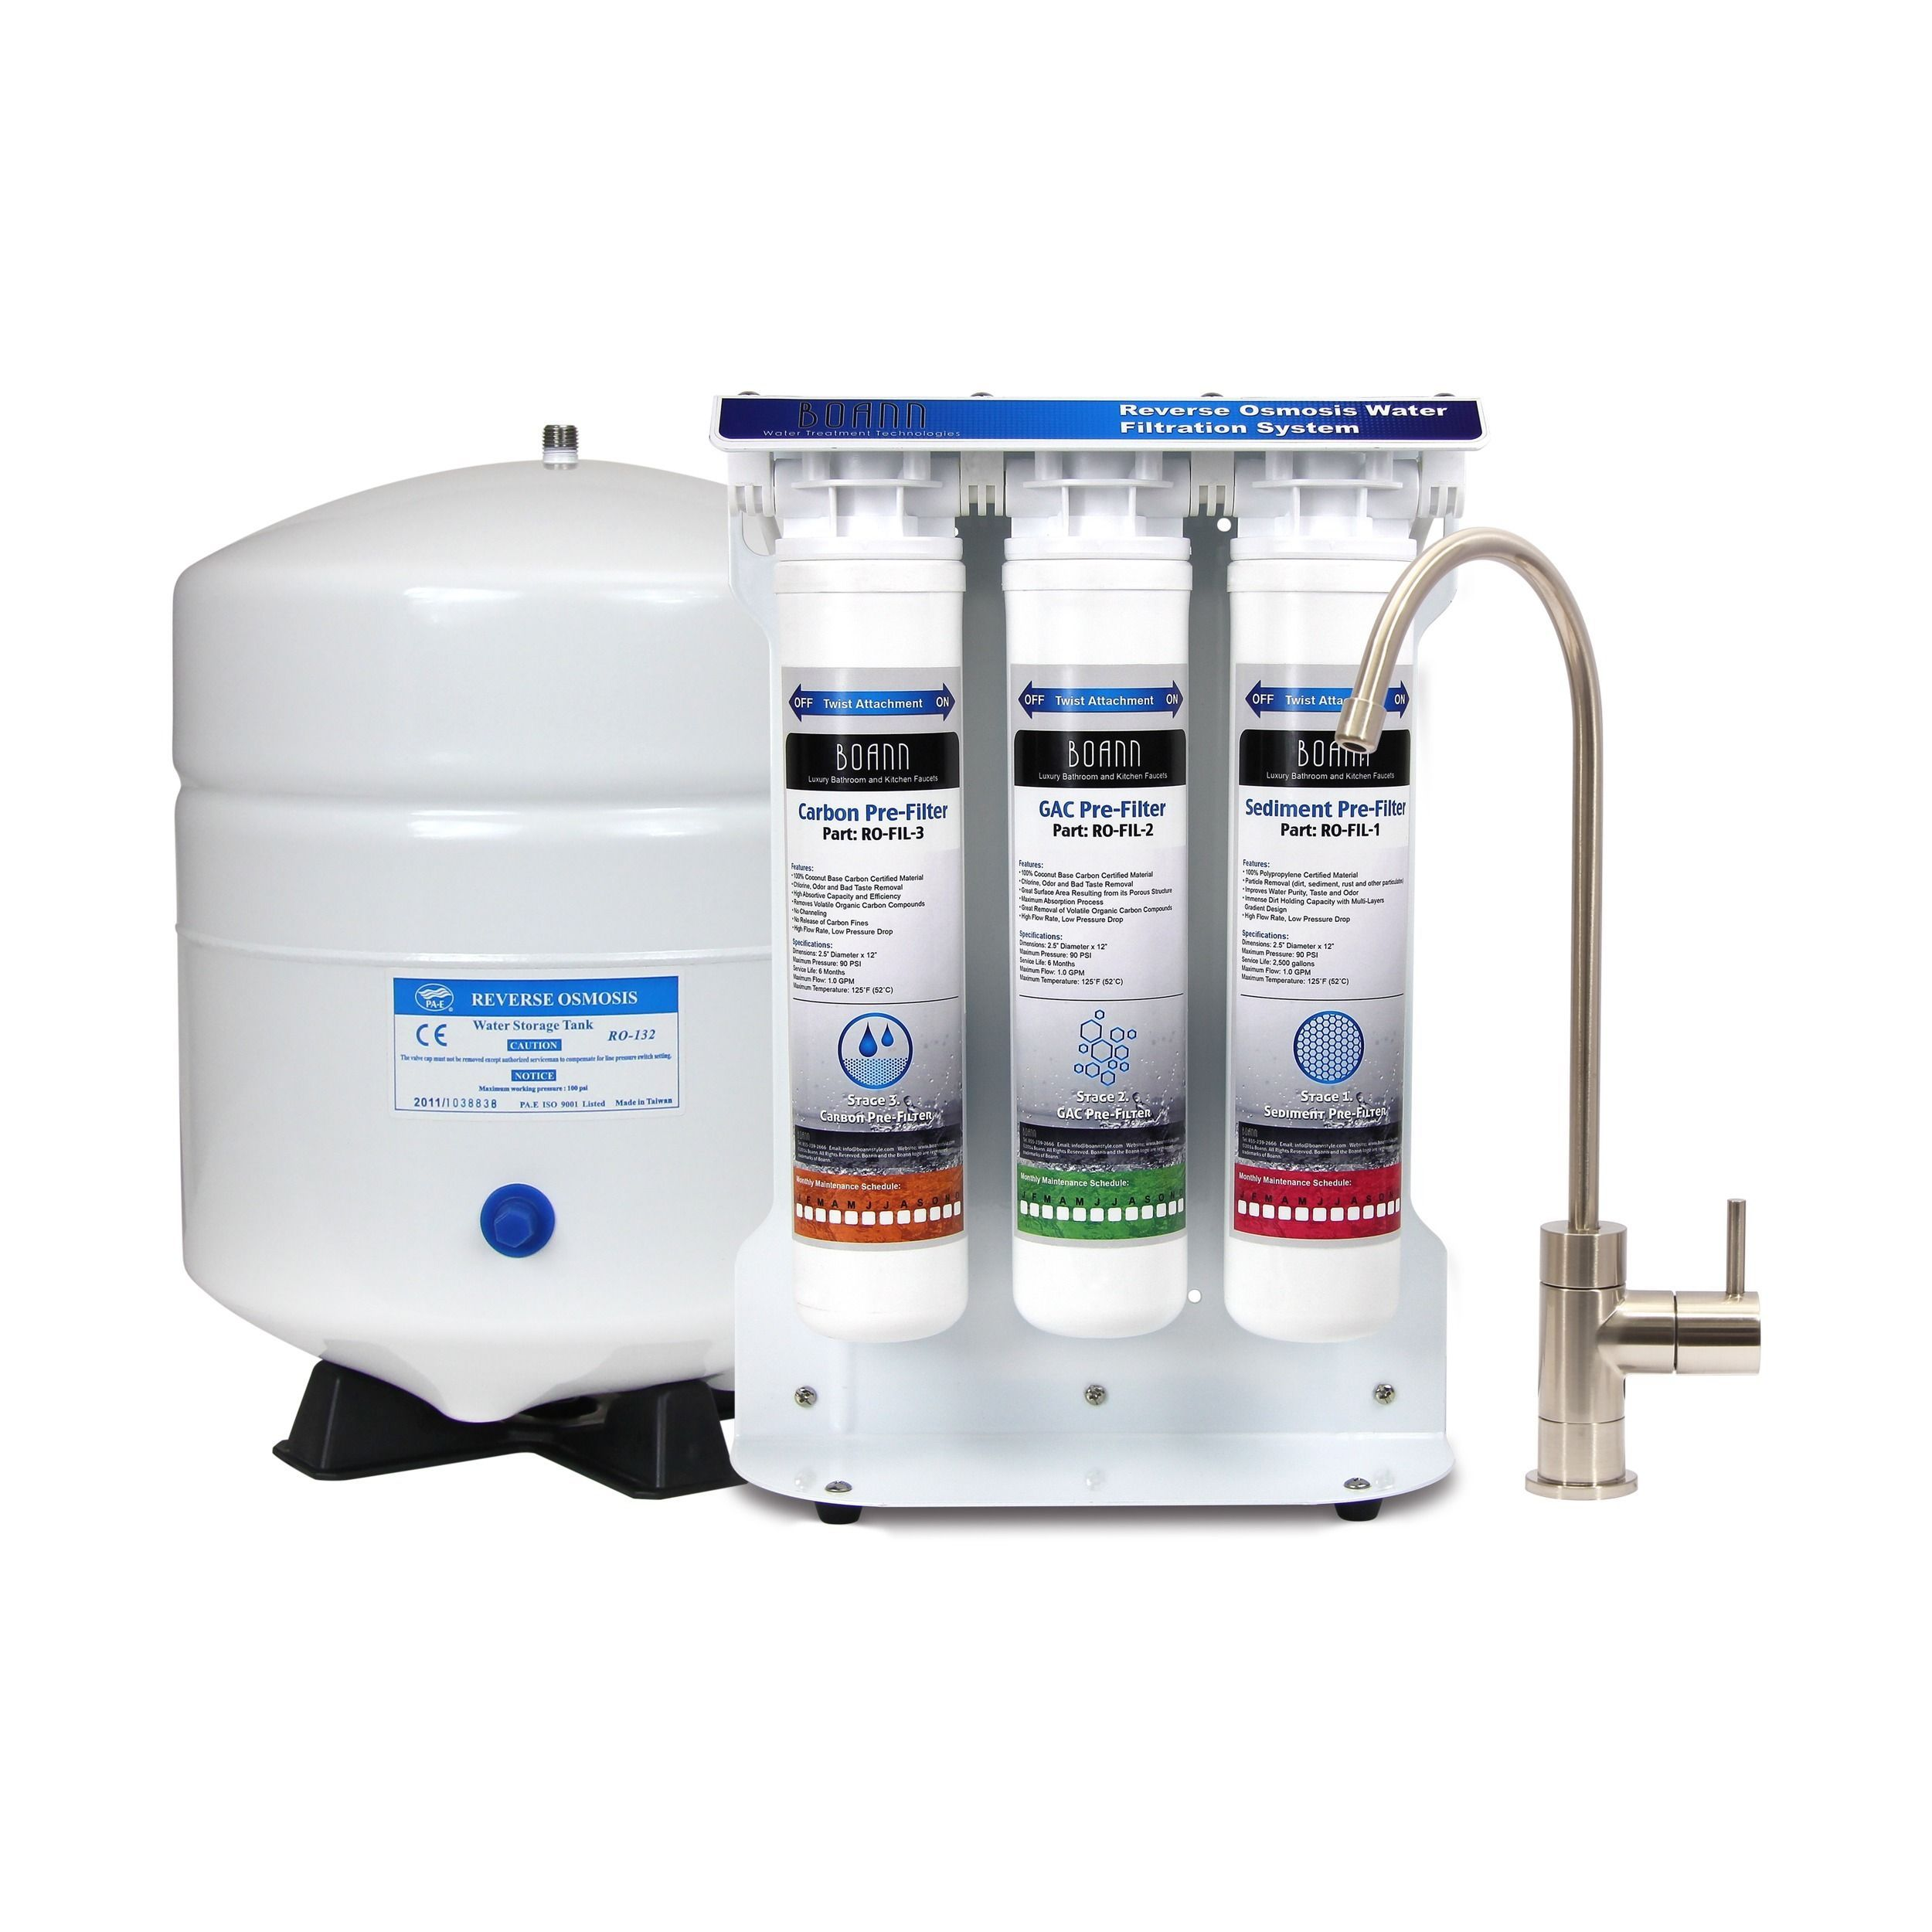 Boann 5 stage Reverse Osmosis Water Filter System with Quick twist